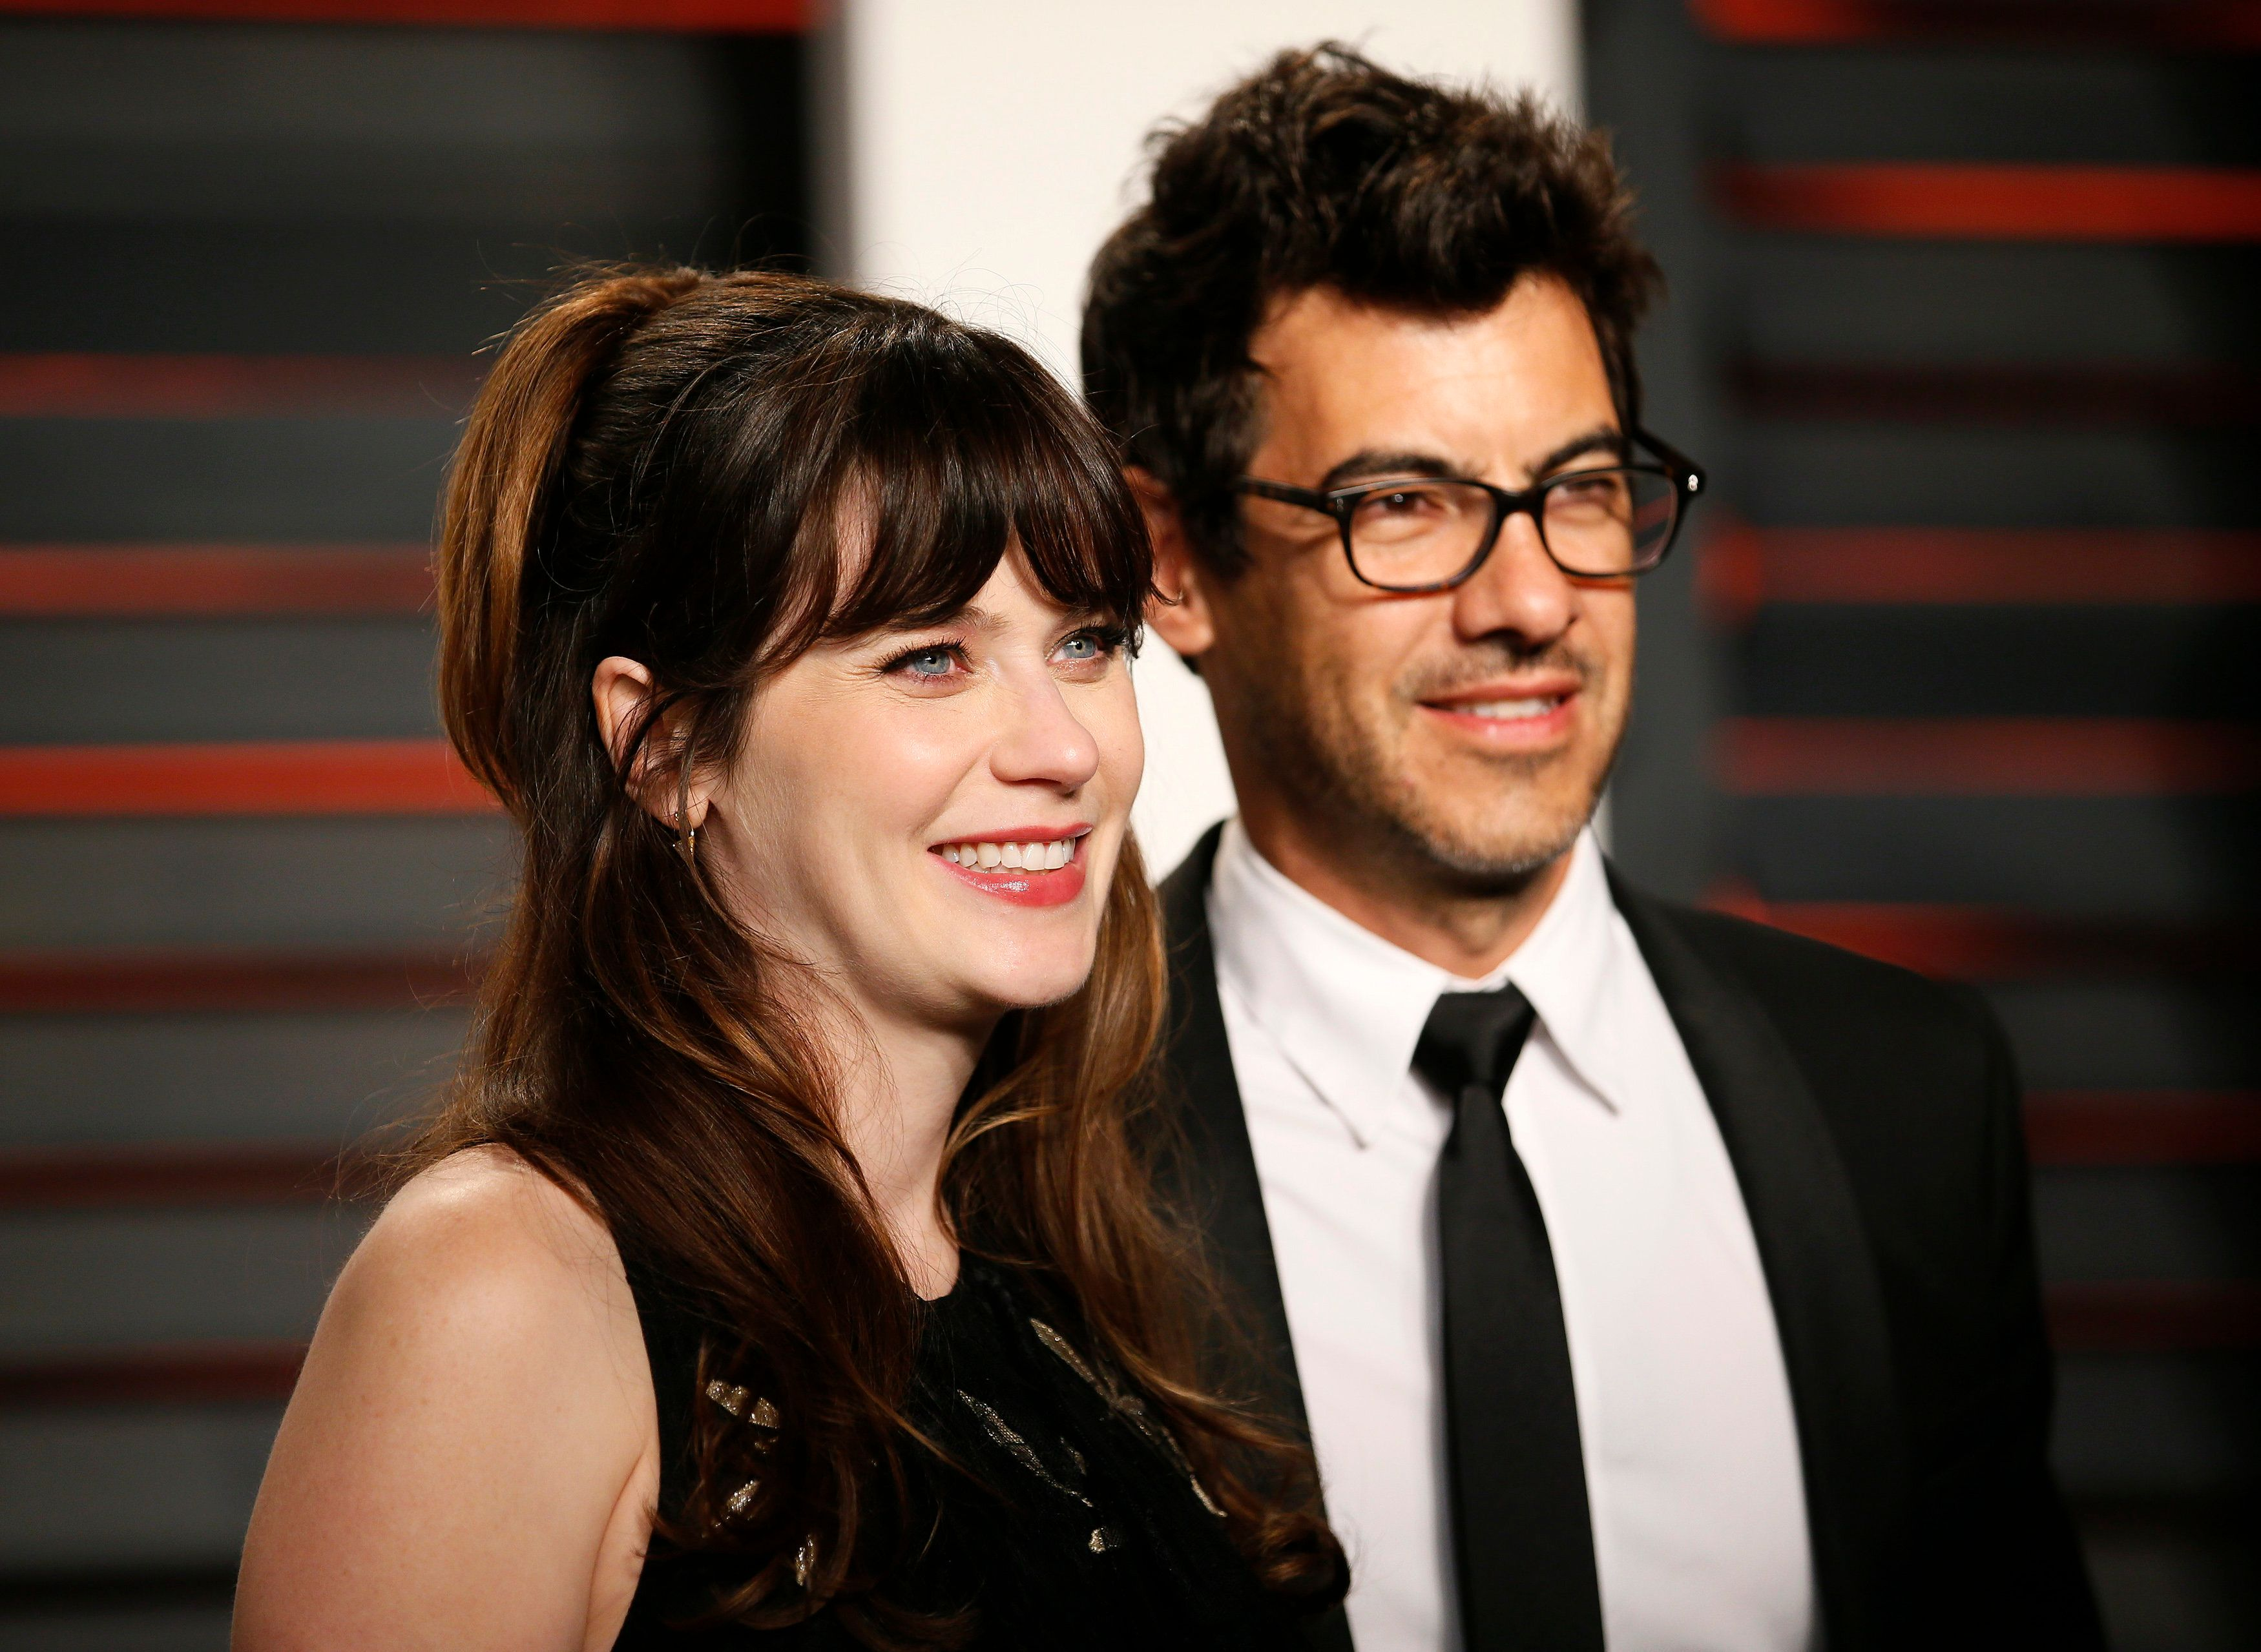 Actress Zooey Deschanel and husband Jacob Pechenik arrive at the Vanity Fair Oscar Party in Beverly Hills, California February 28, 2016.  REUTERS/Danny Moloshok